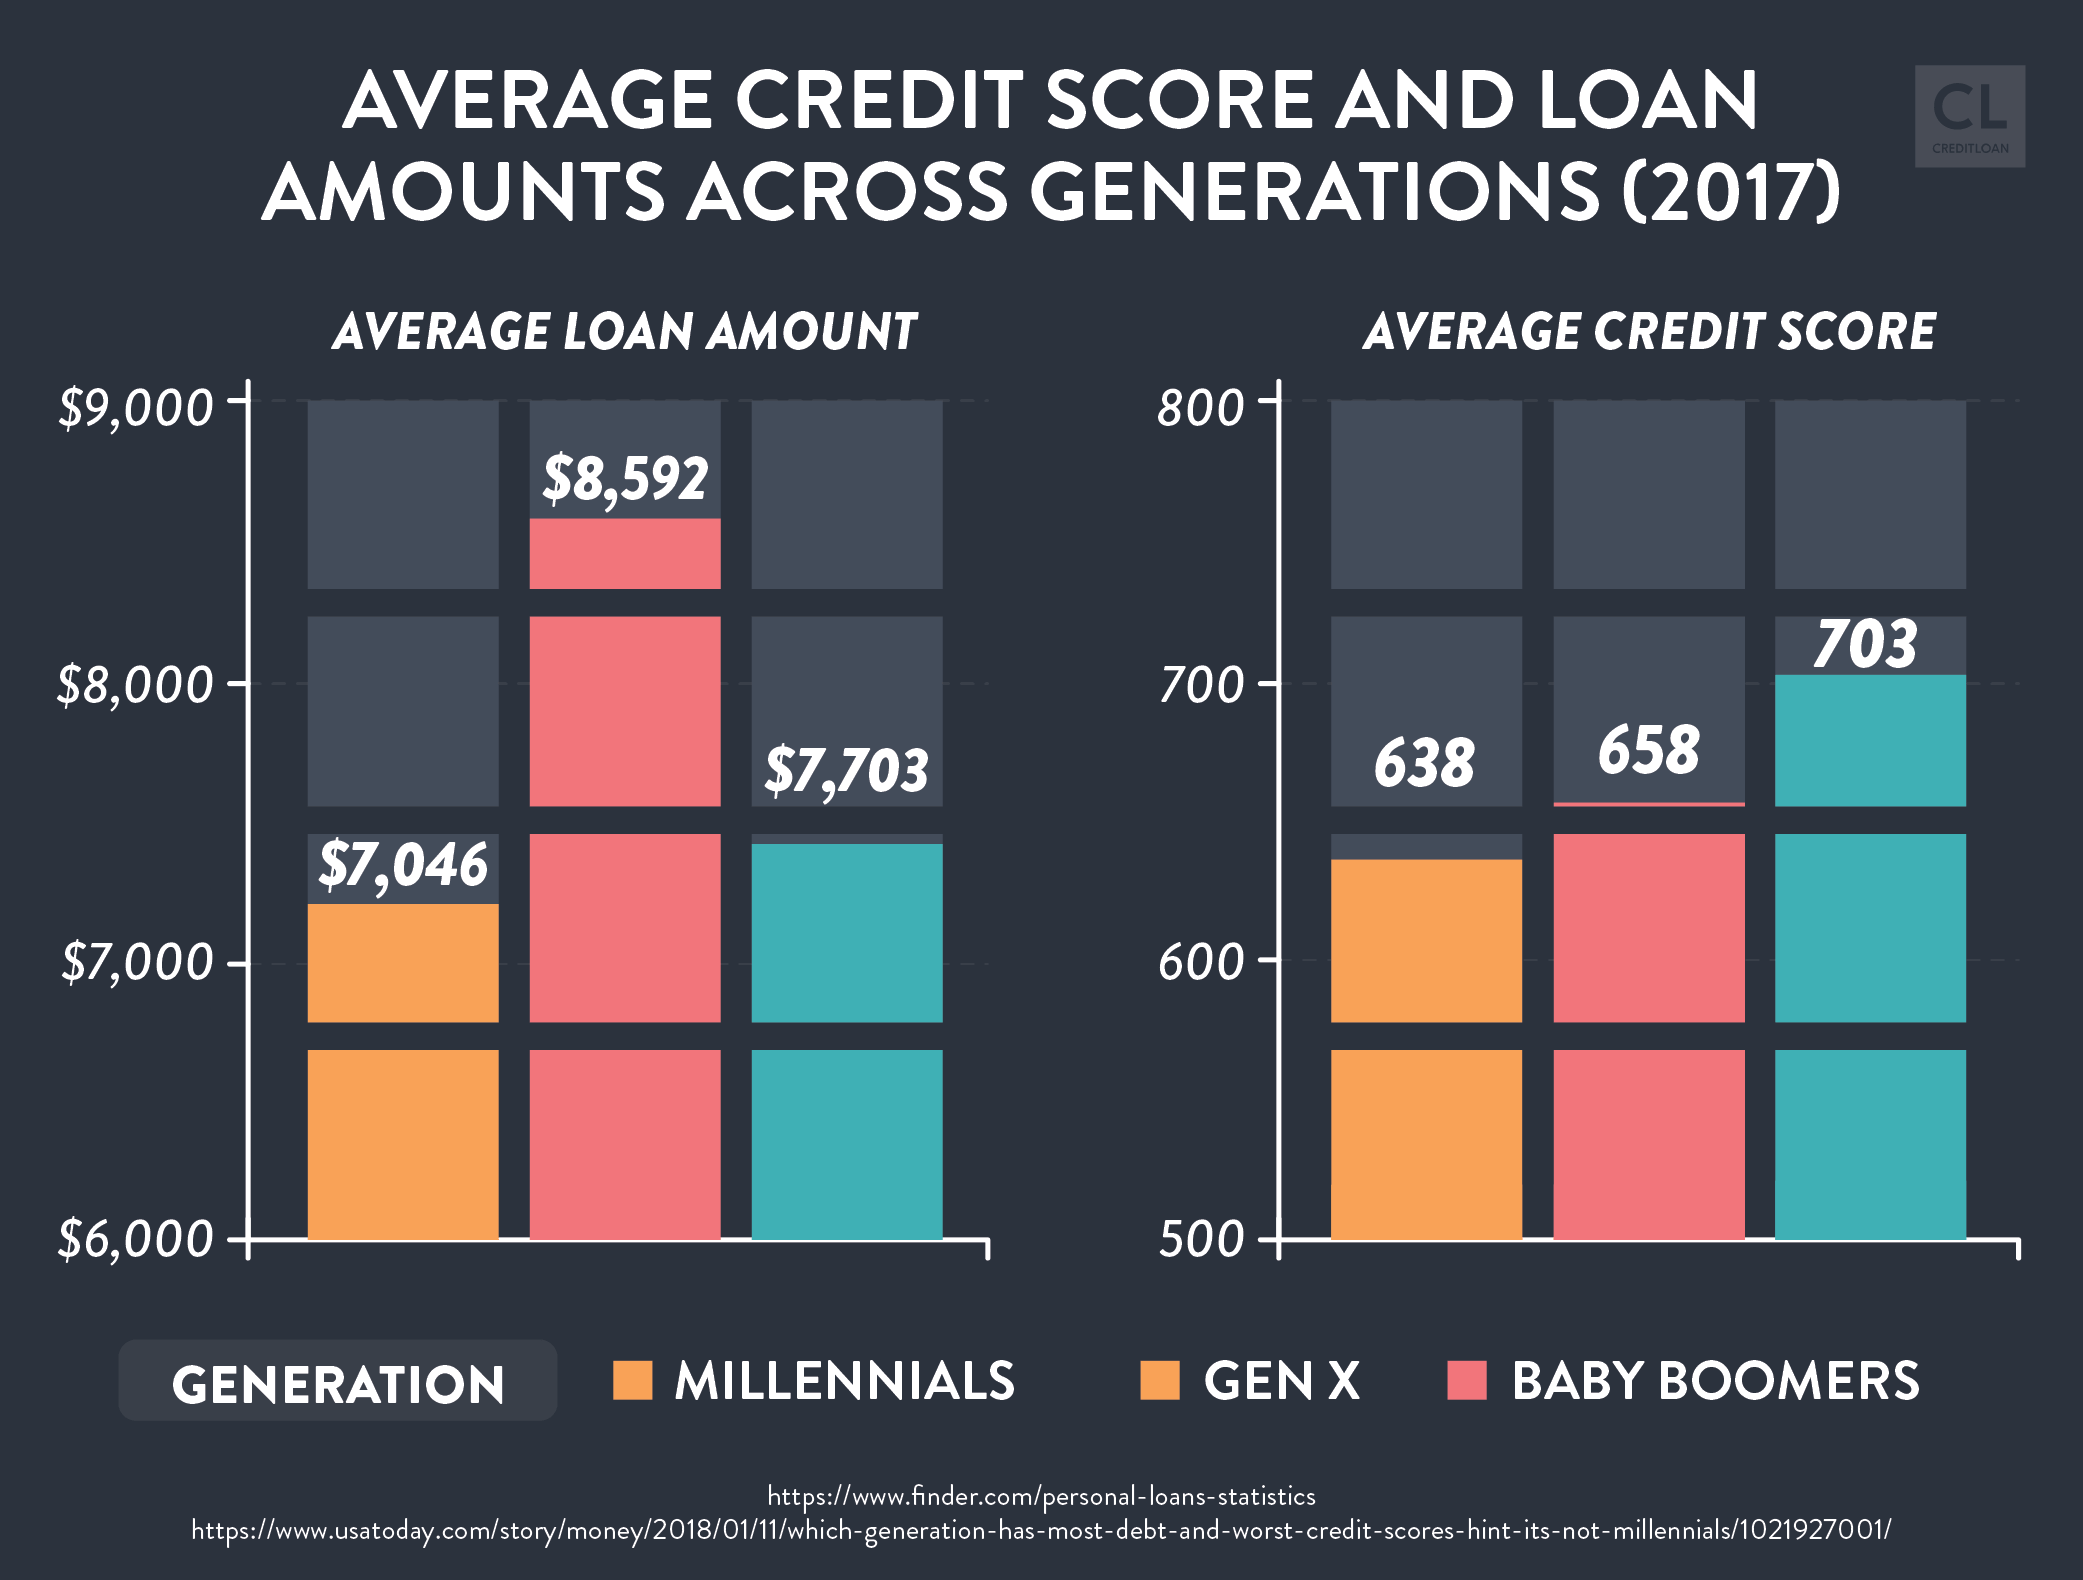 Average Credit Score and Loan Amounts Across Generations (2017)